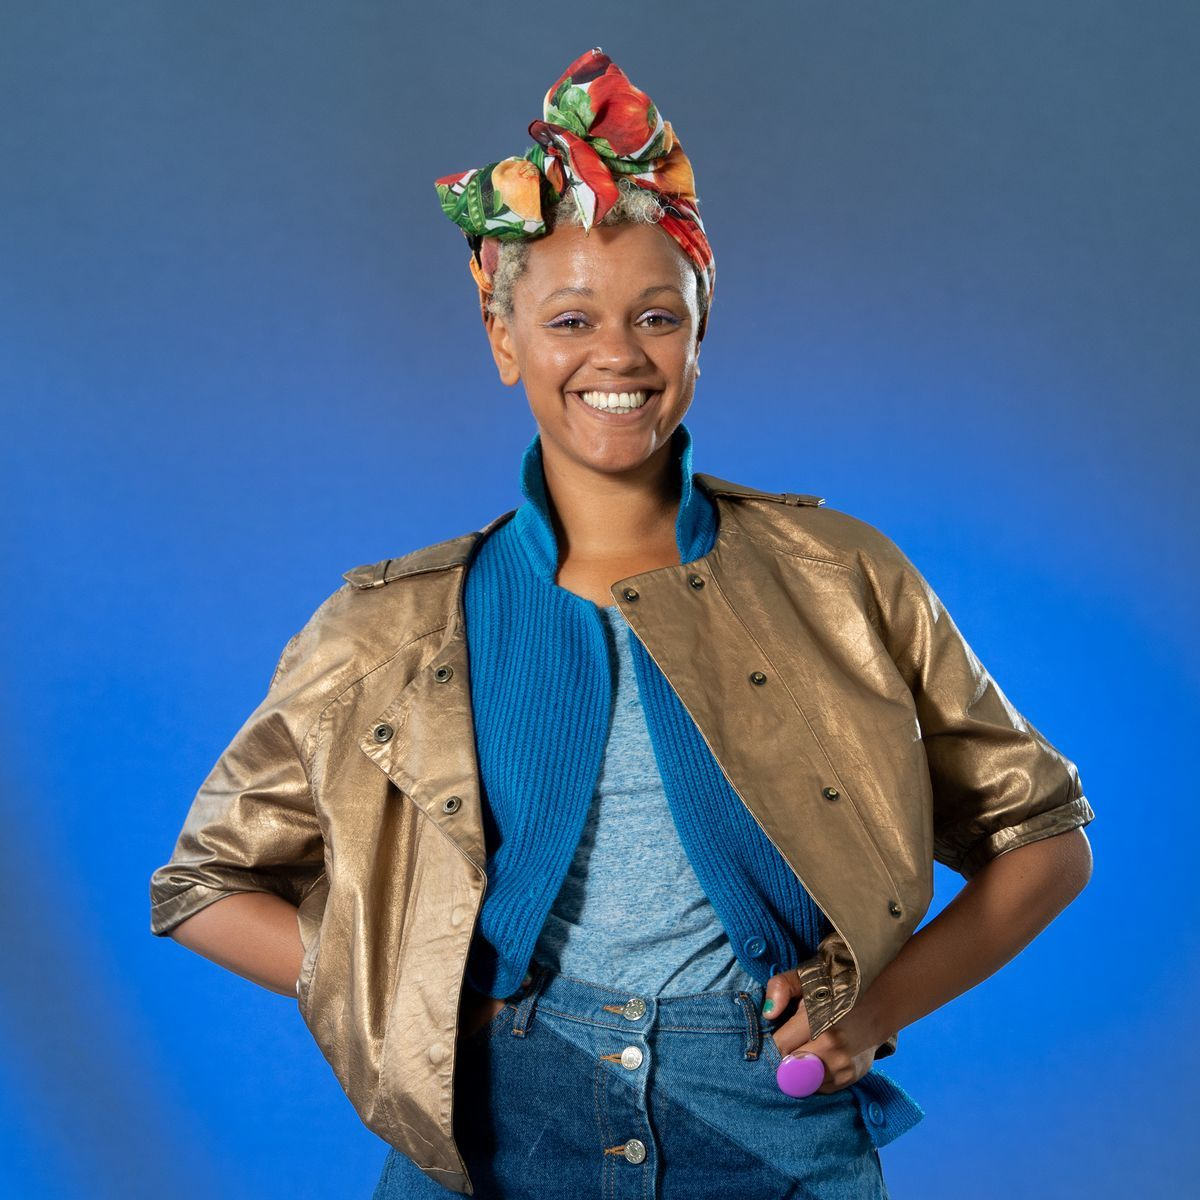 Podcast host Gemma Cairney